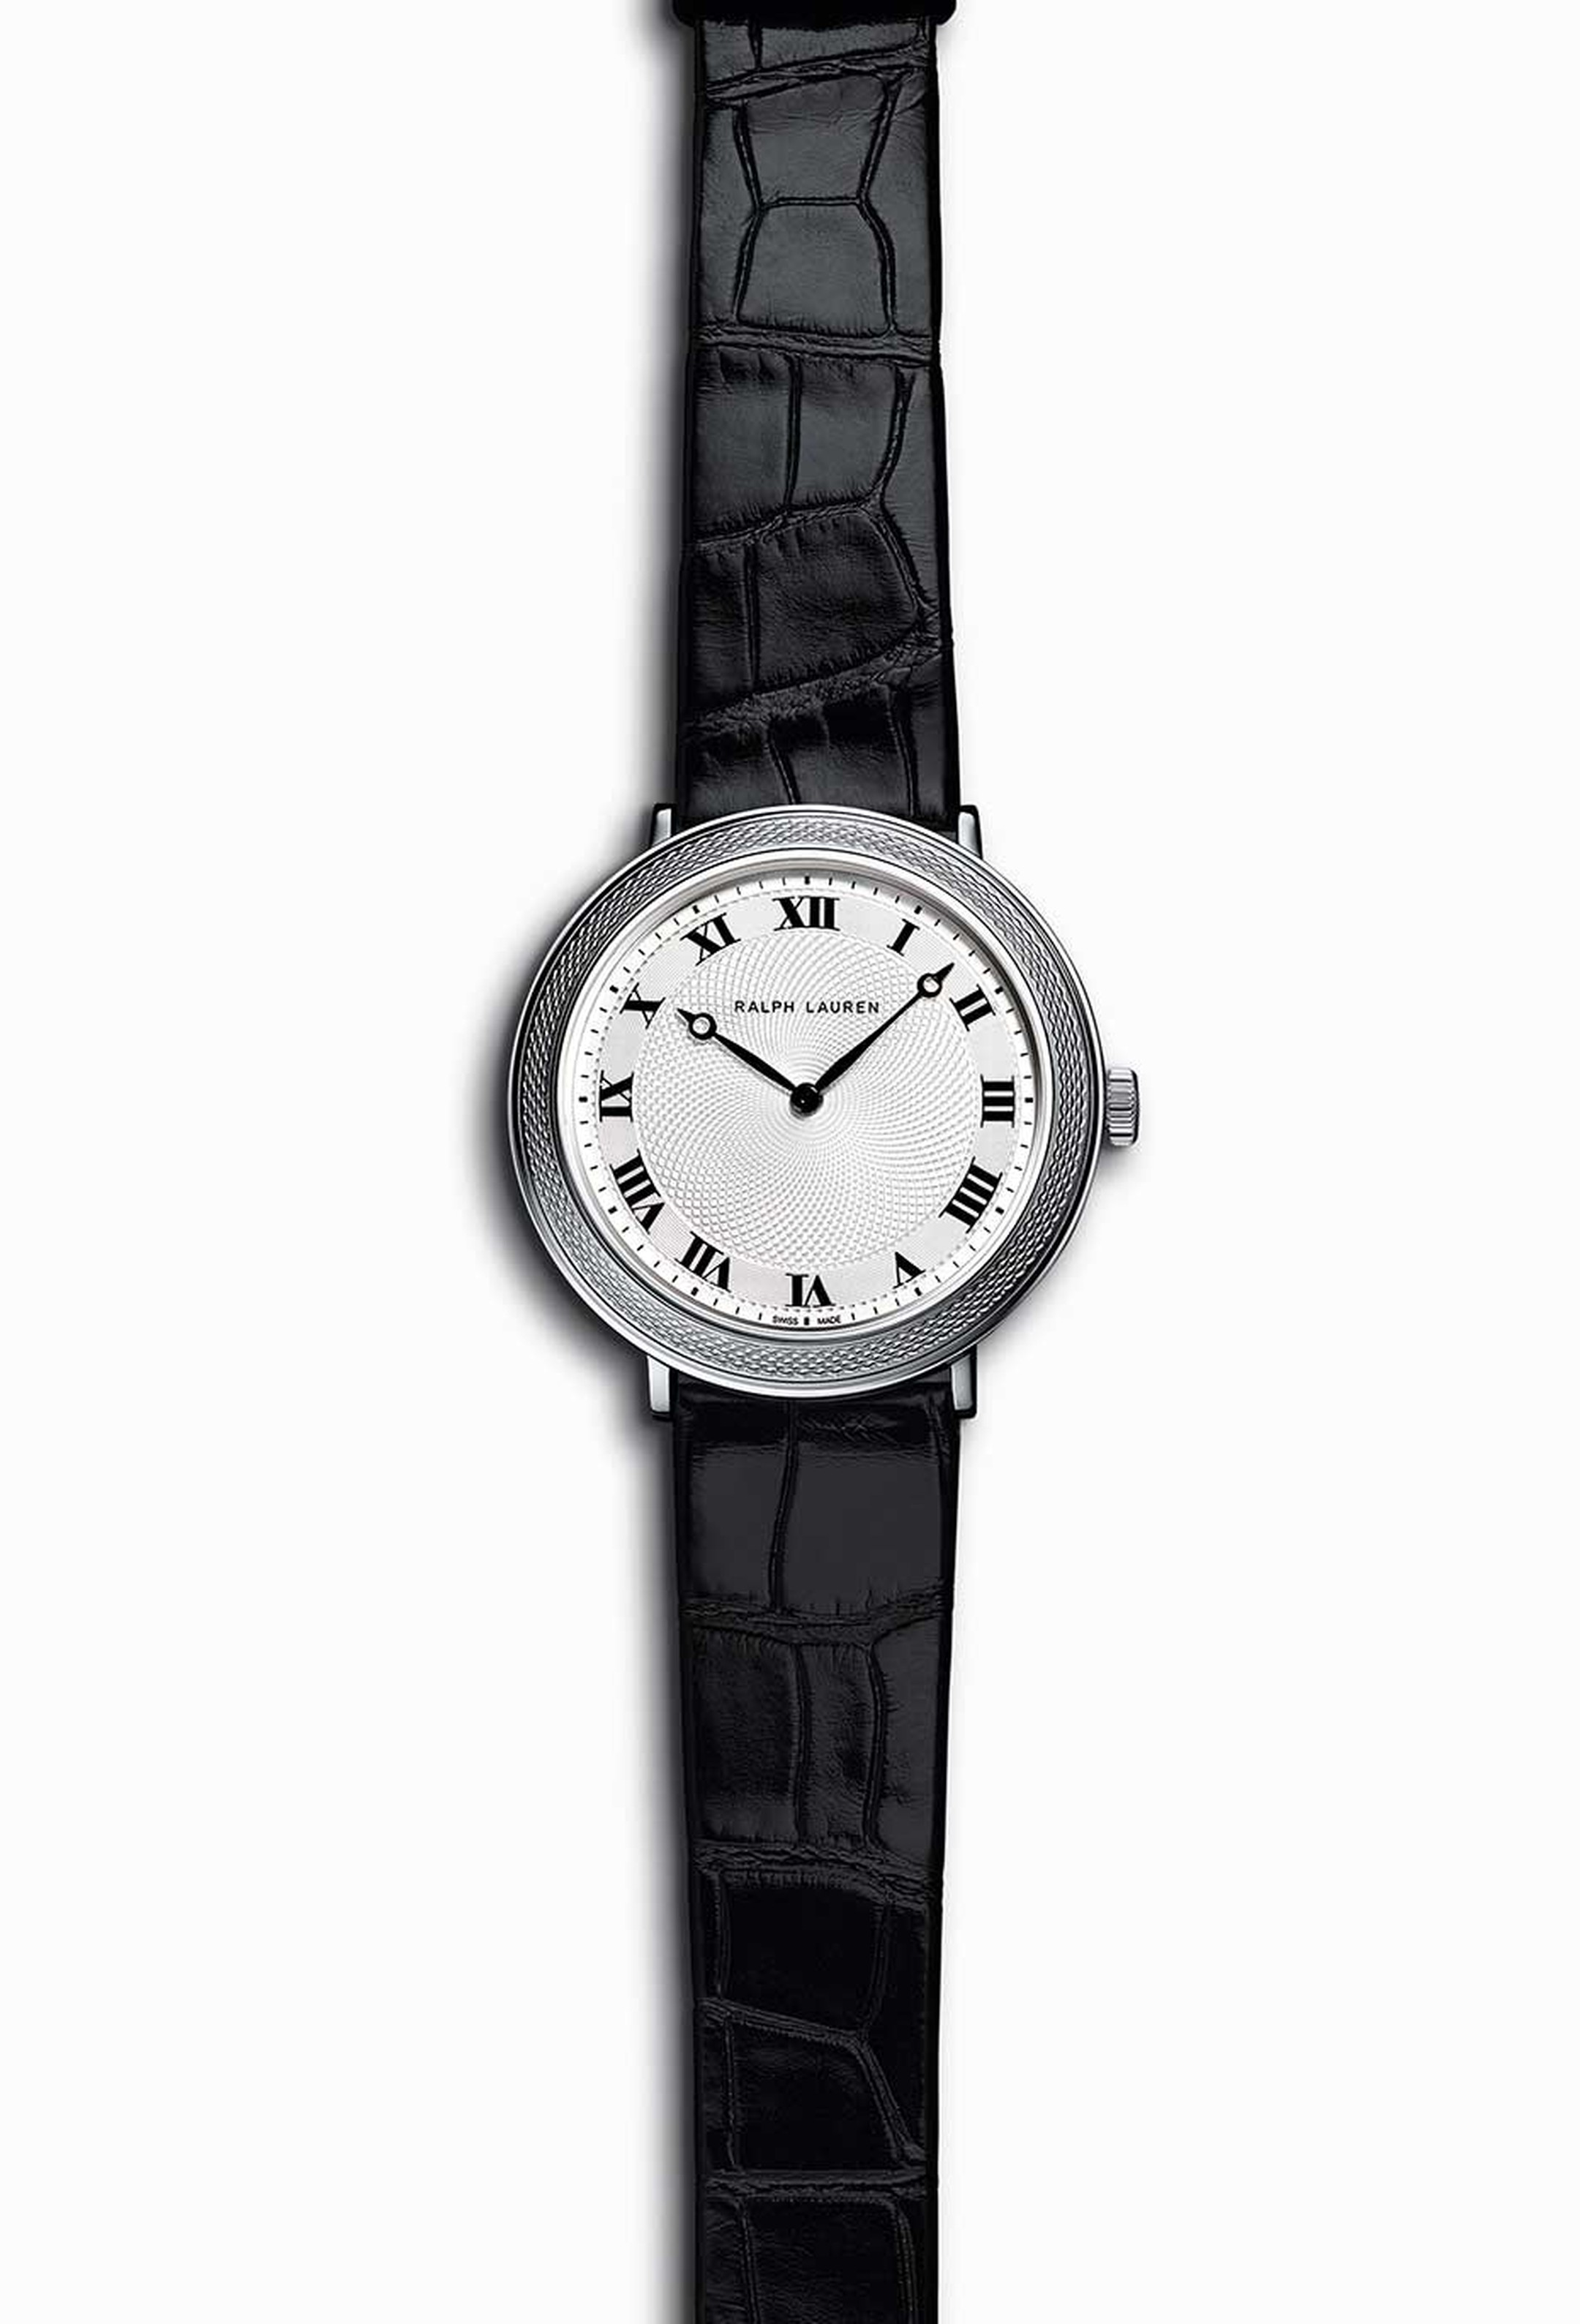 =Ralph Lauren Slim Classique 32mm watch in stainless steel, with intricate guilloché engraving on the bezel